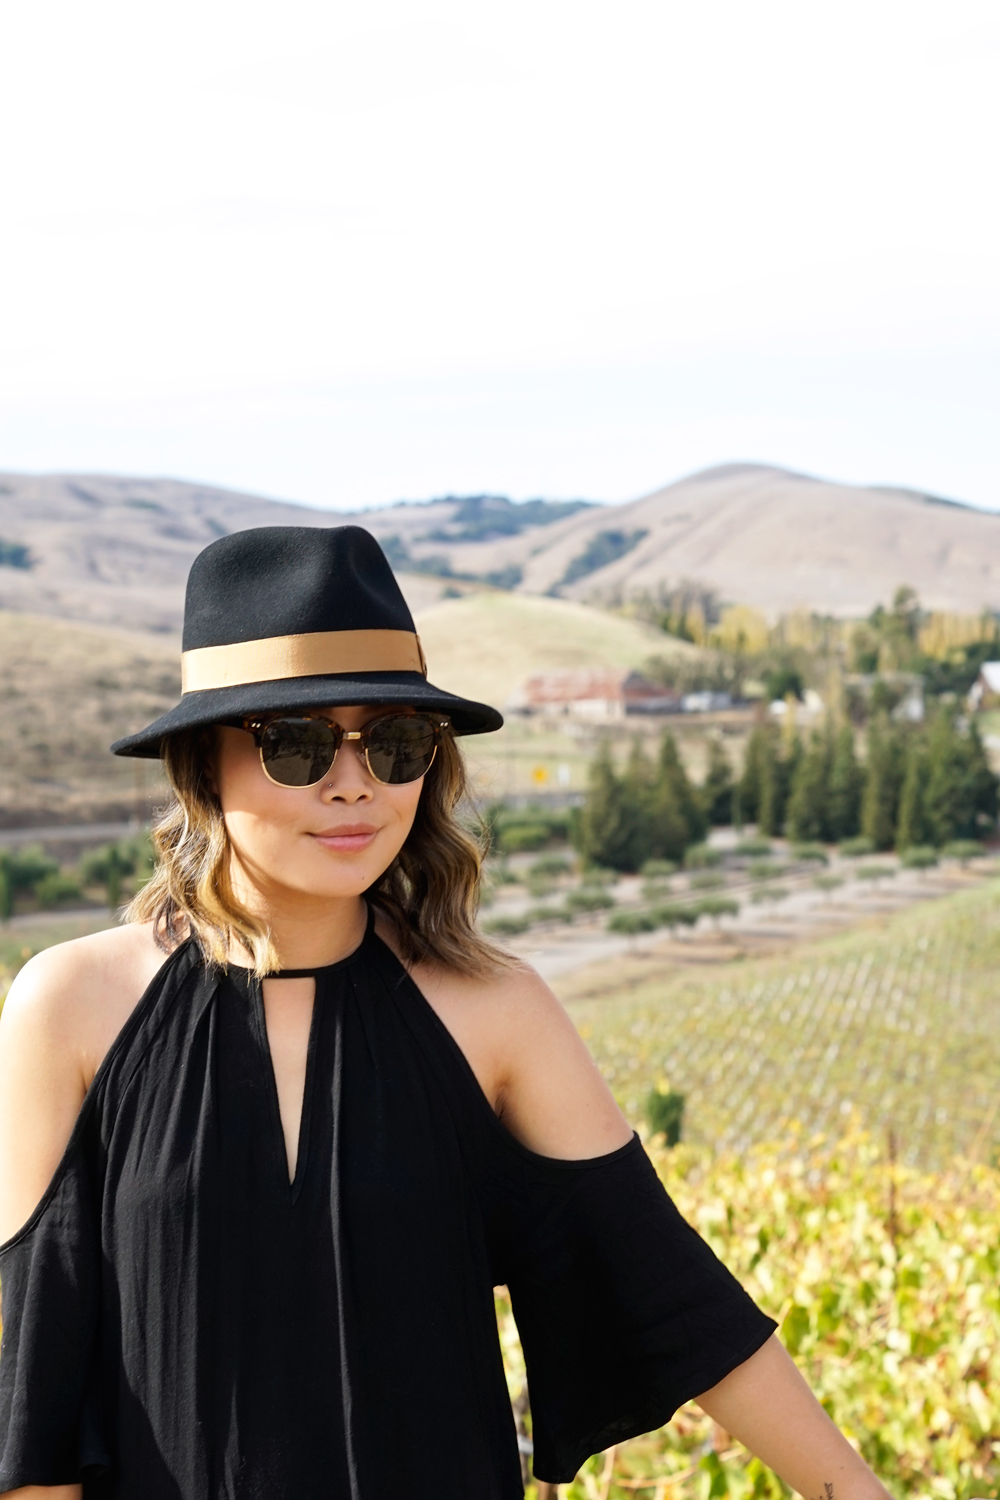 05sonoma-winery-travel-style-fashion-goorinbros-azalea